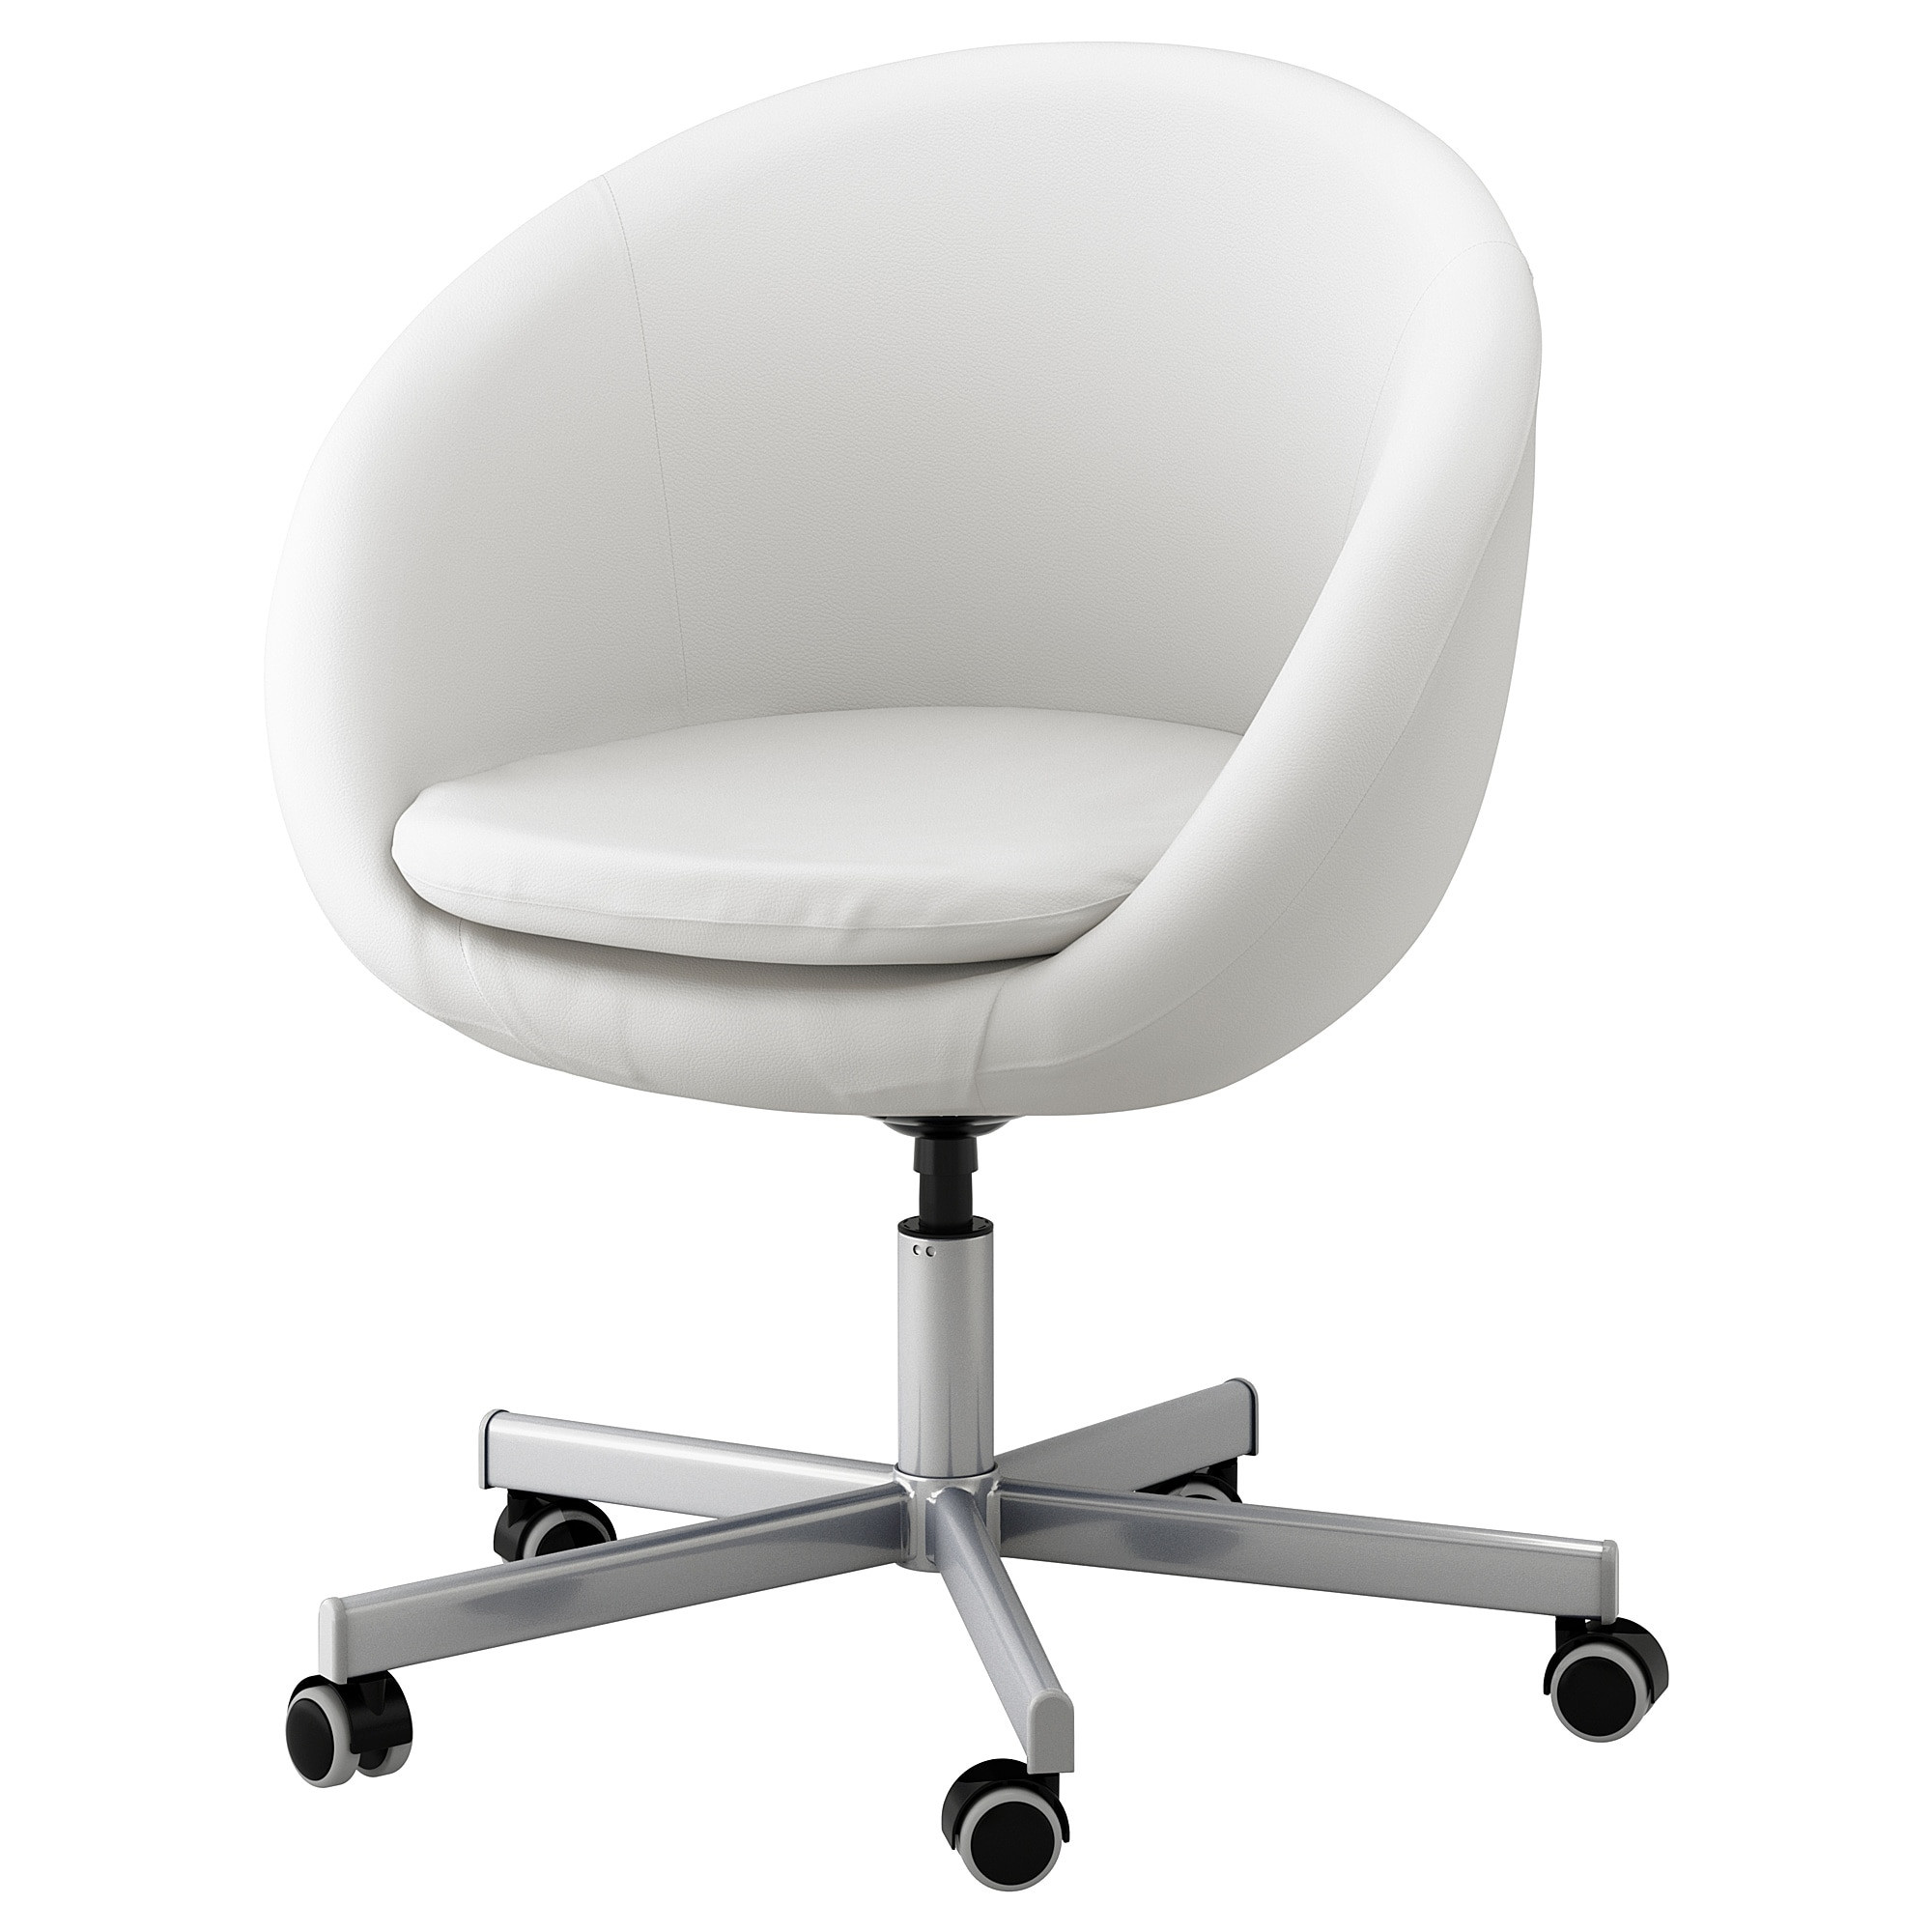 Best ideas about White Desk Chair . Save or Pin SKRUVSTA Swivel chair Idhult white IKEA Now.